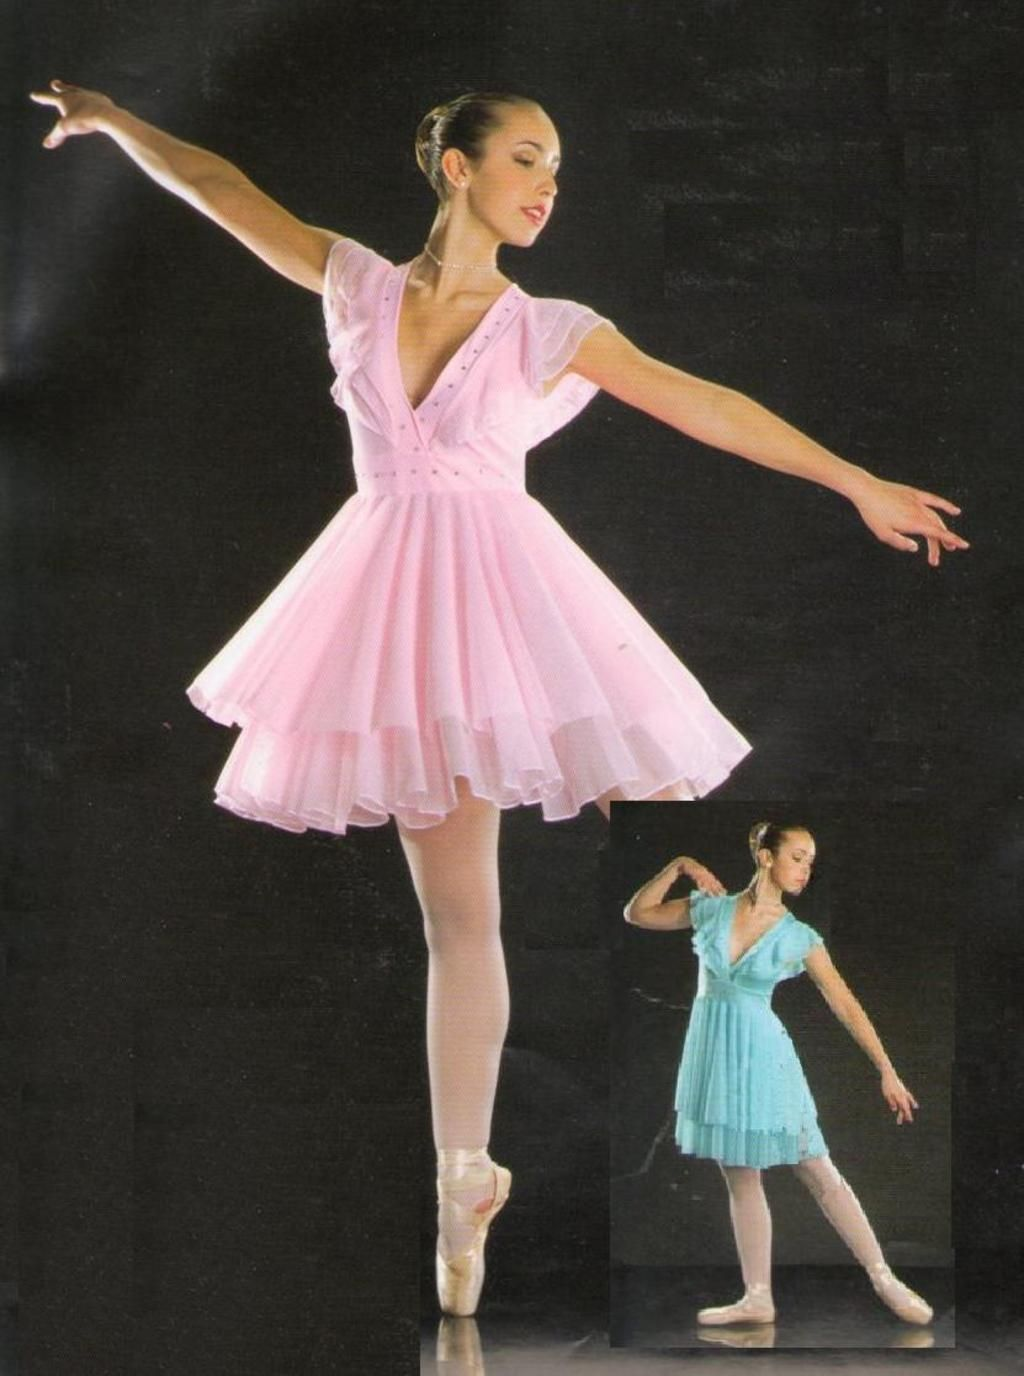 Check out the Ballerina Girls, three best friends who are all taking ballet lessons and love to dance! The girls have their own individual personality, from the rather serious one on the left, to the very playful on the right! Dress them up in beautiful ballet tutus and ballet shoes for a practice in the studio, for performing or stage or for 90%(10).